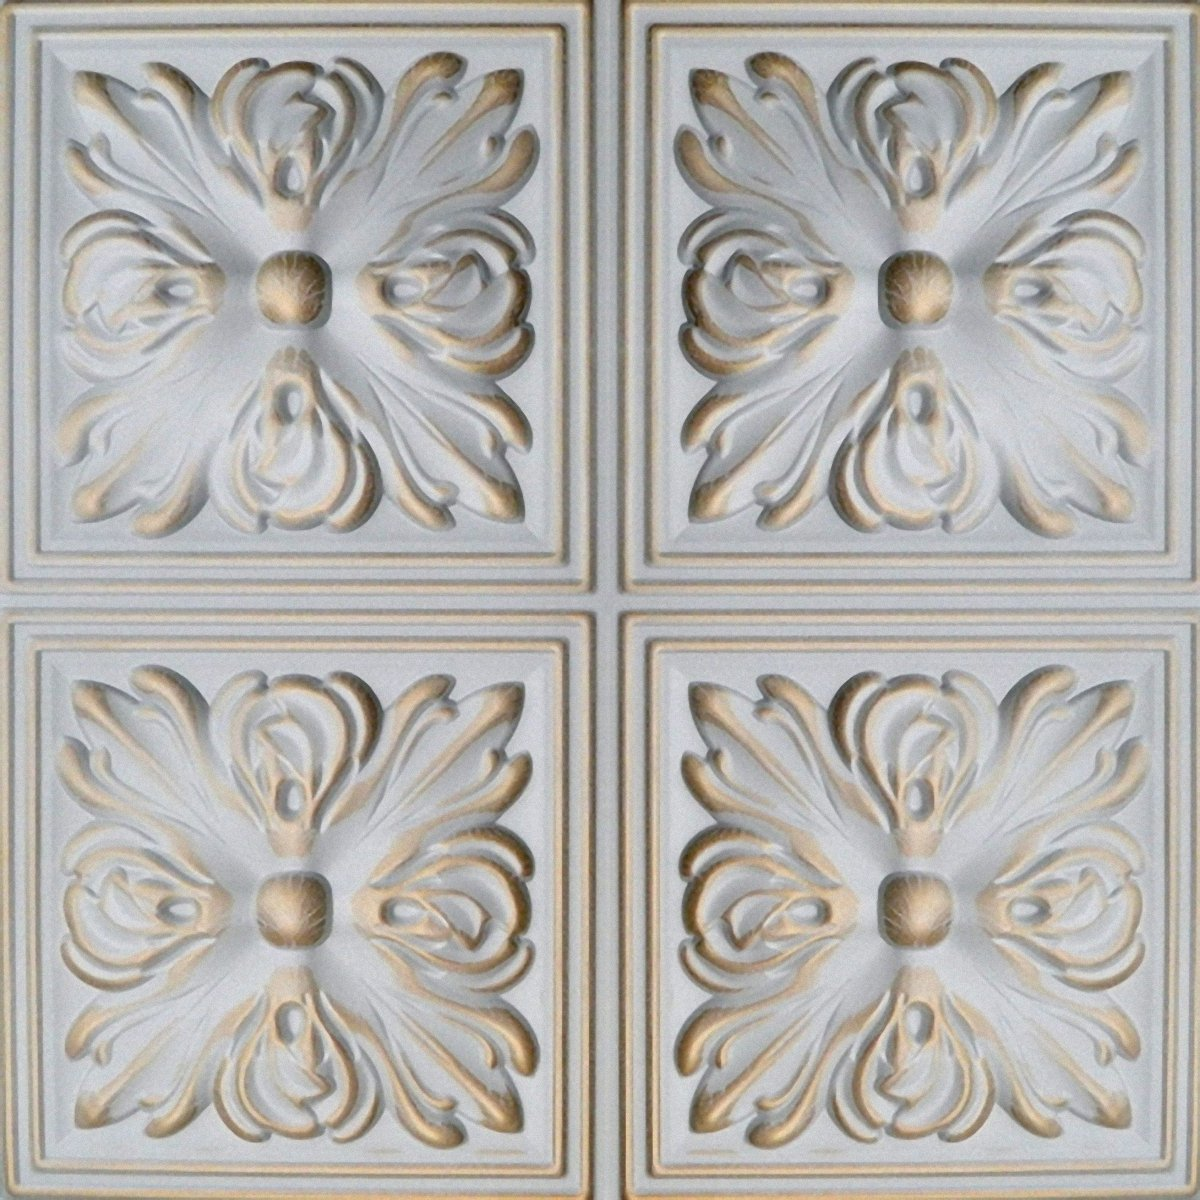 Hand Painted Polystyrene Foam Ceiling Tiles Retro 05 White - Gold (Pack 40 pcs / 10 sqm) Euro